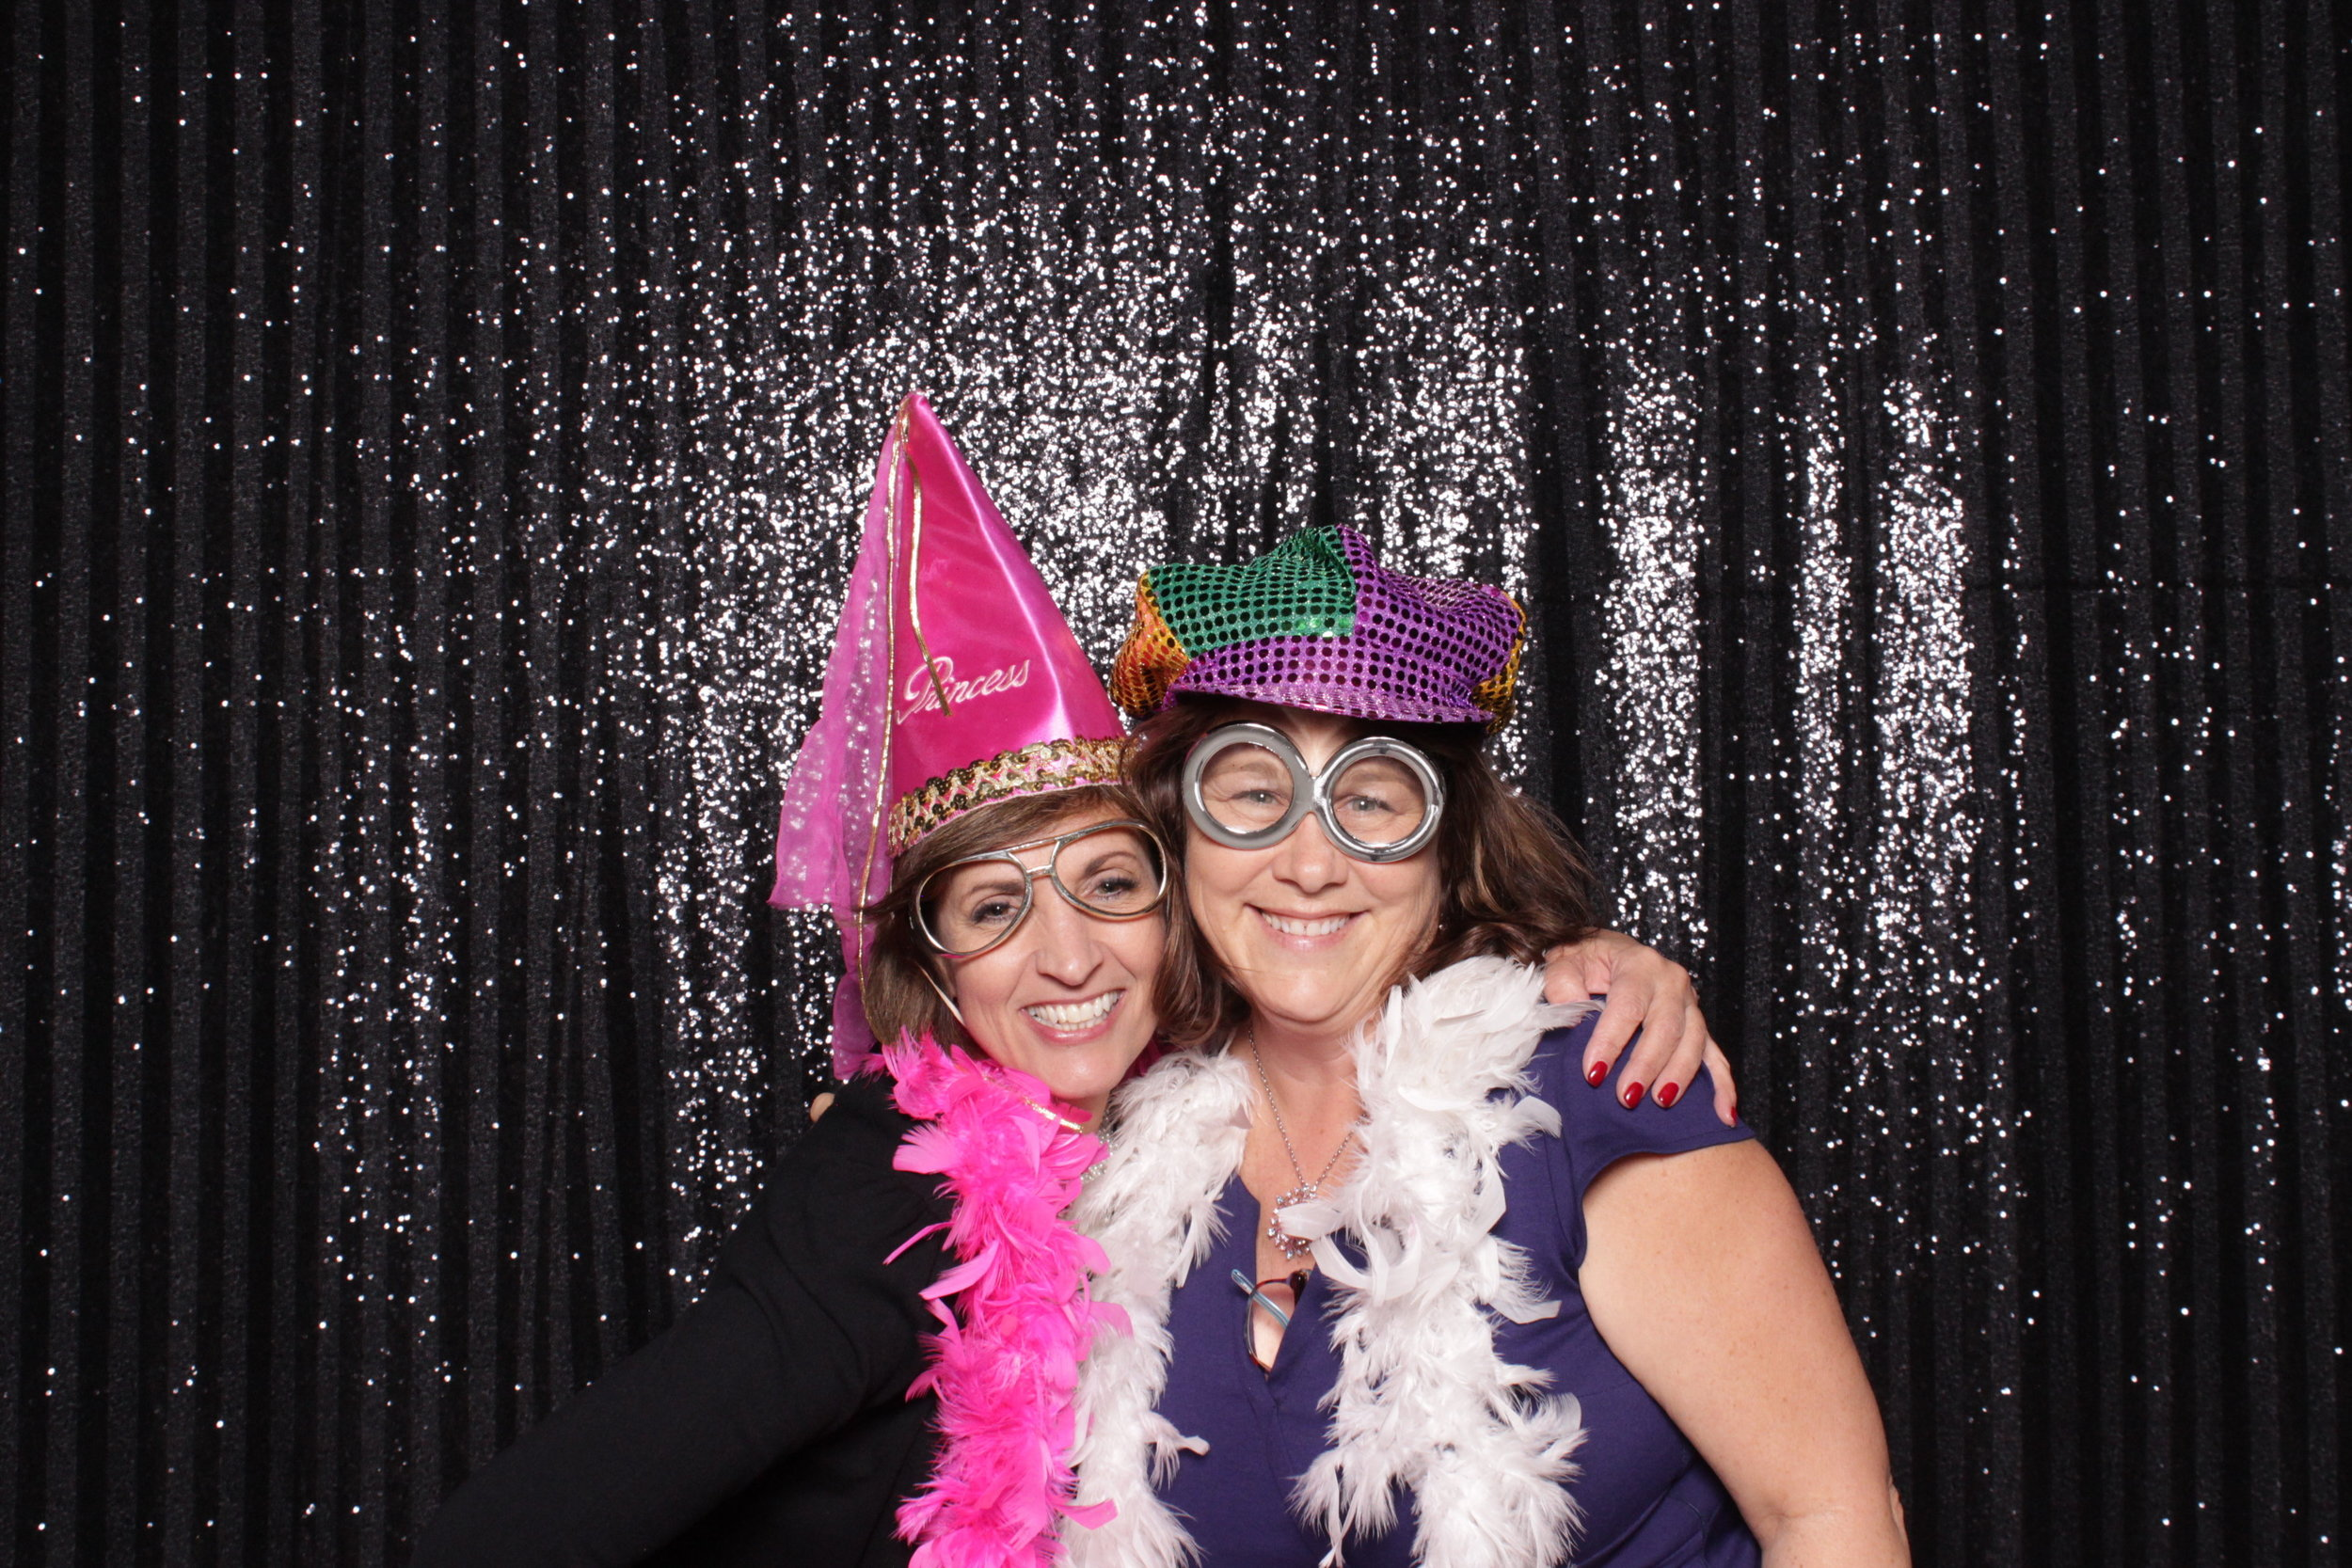 Chico-photo-booth-rental-customize